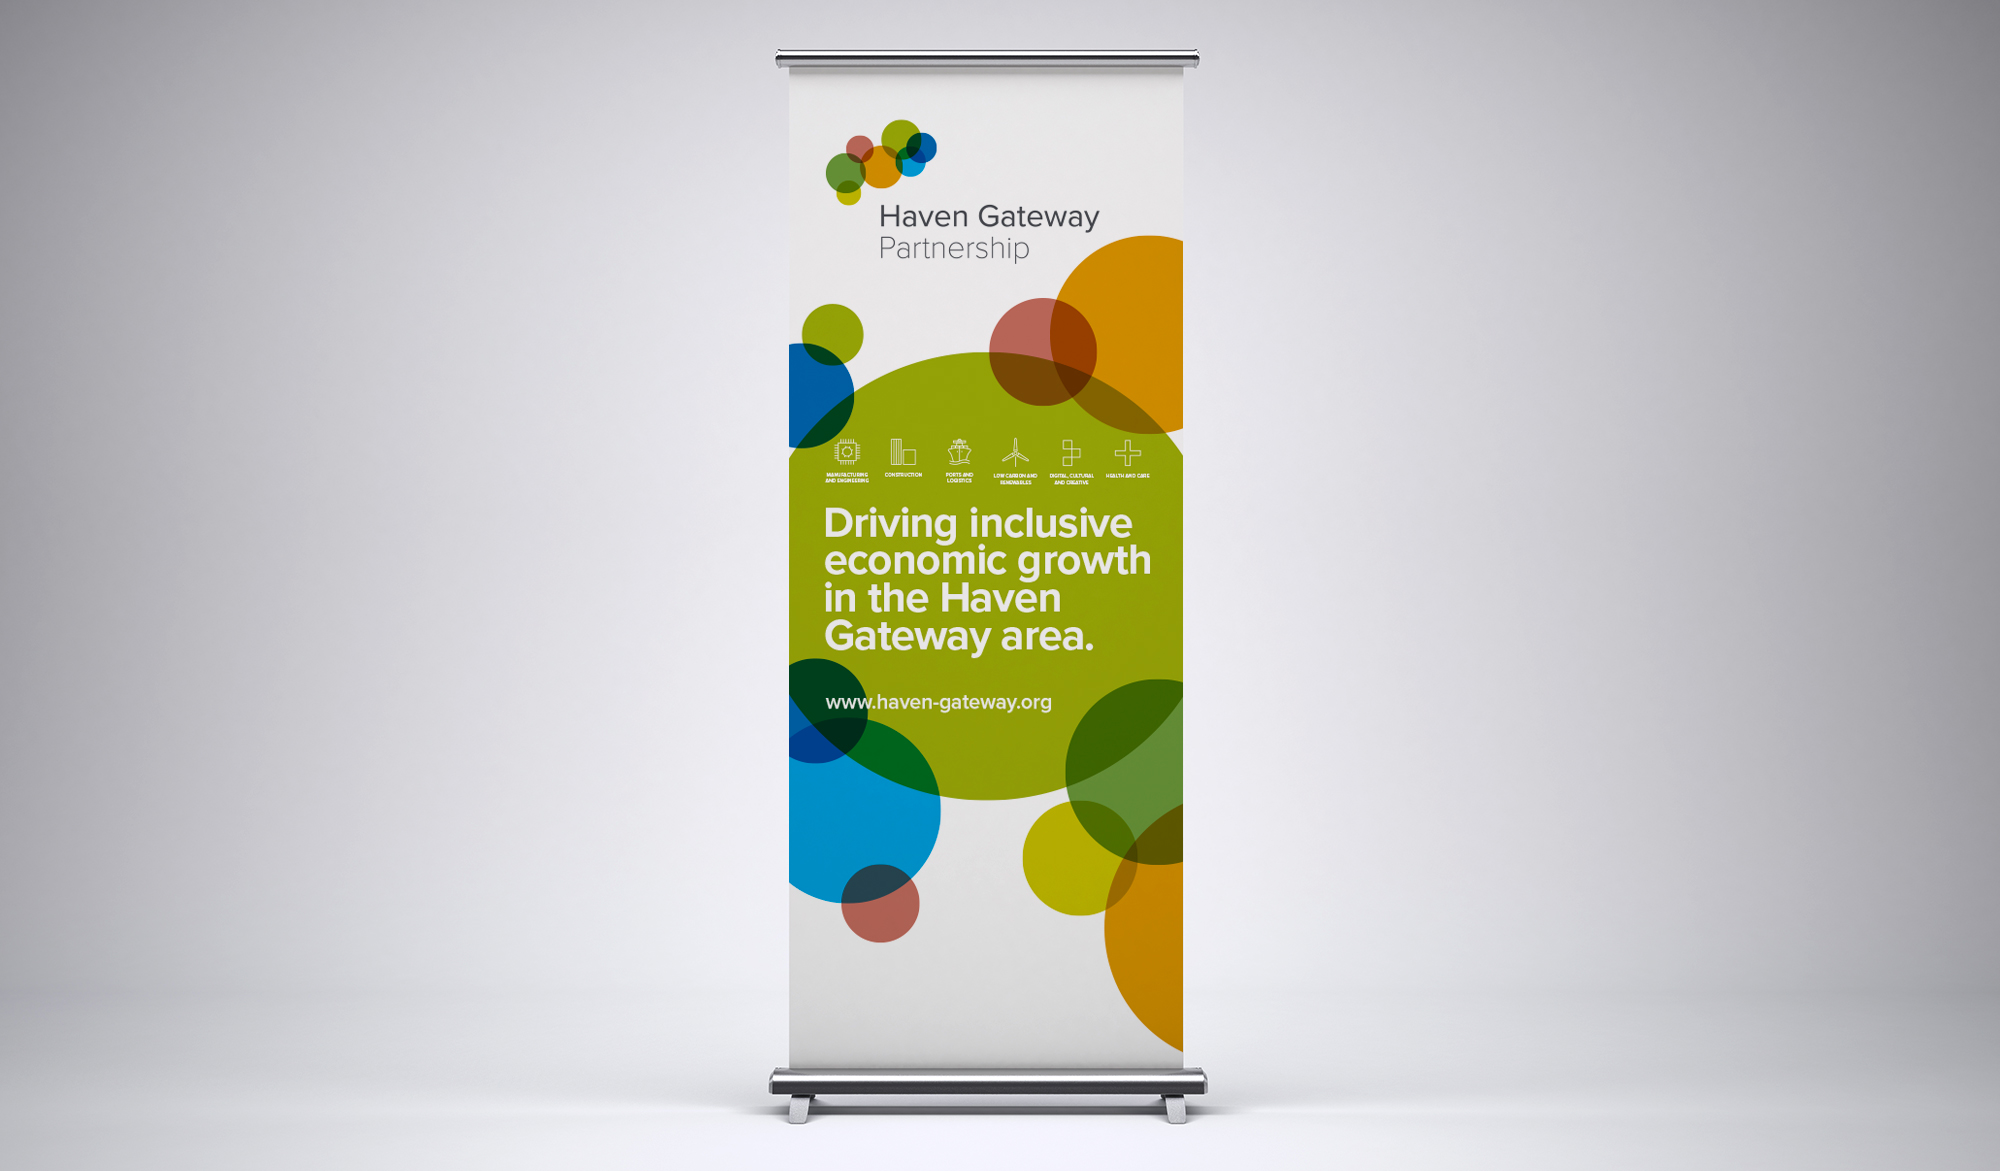 Haven Gateway Partnership roll up banner